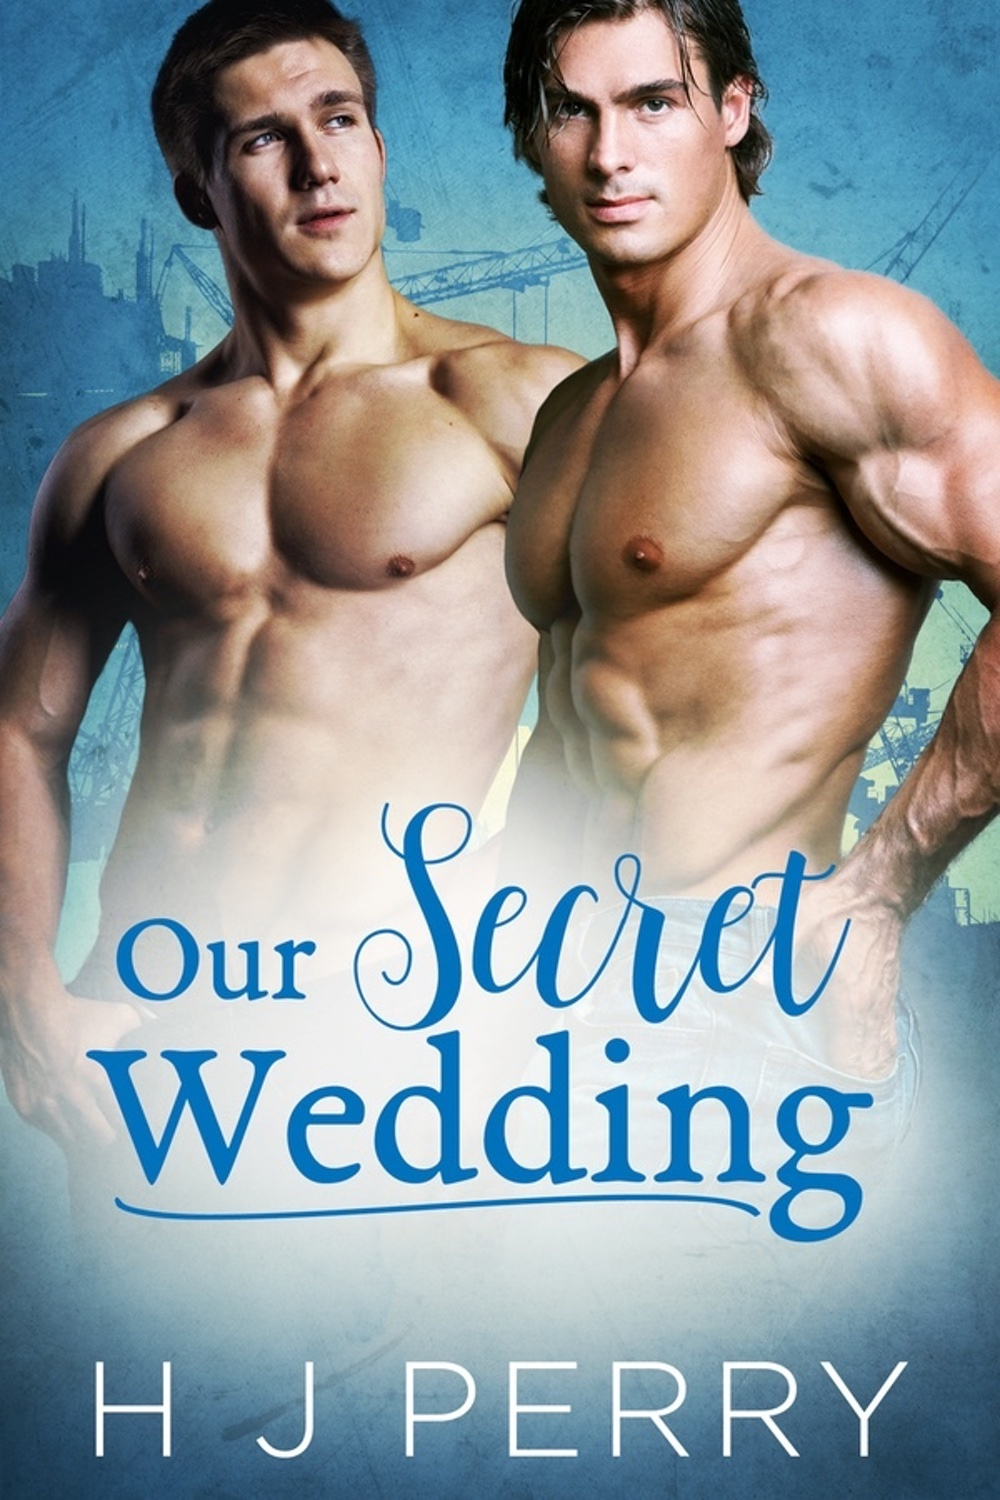 Our Secret Wedding by H J Perry